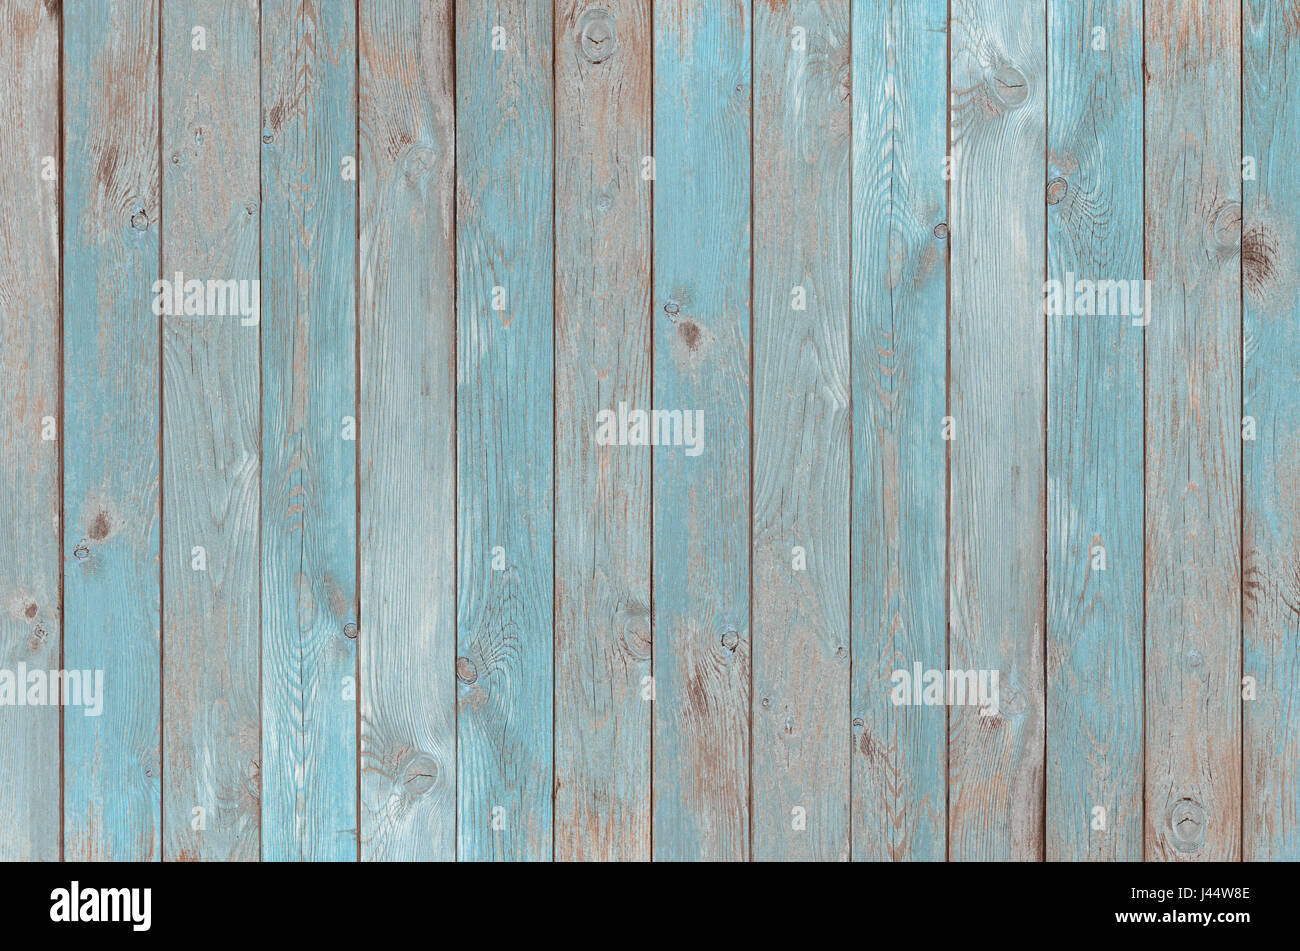 blue vintage wood planks texture or background - Stock Image